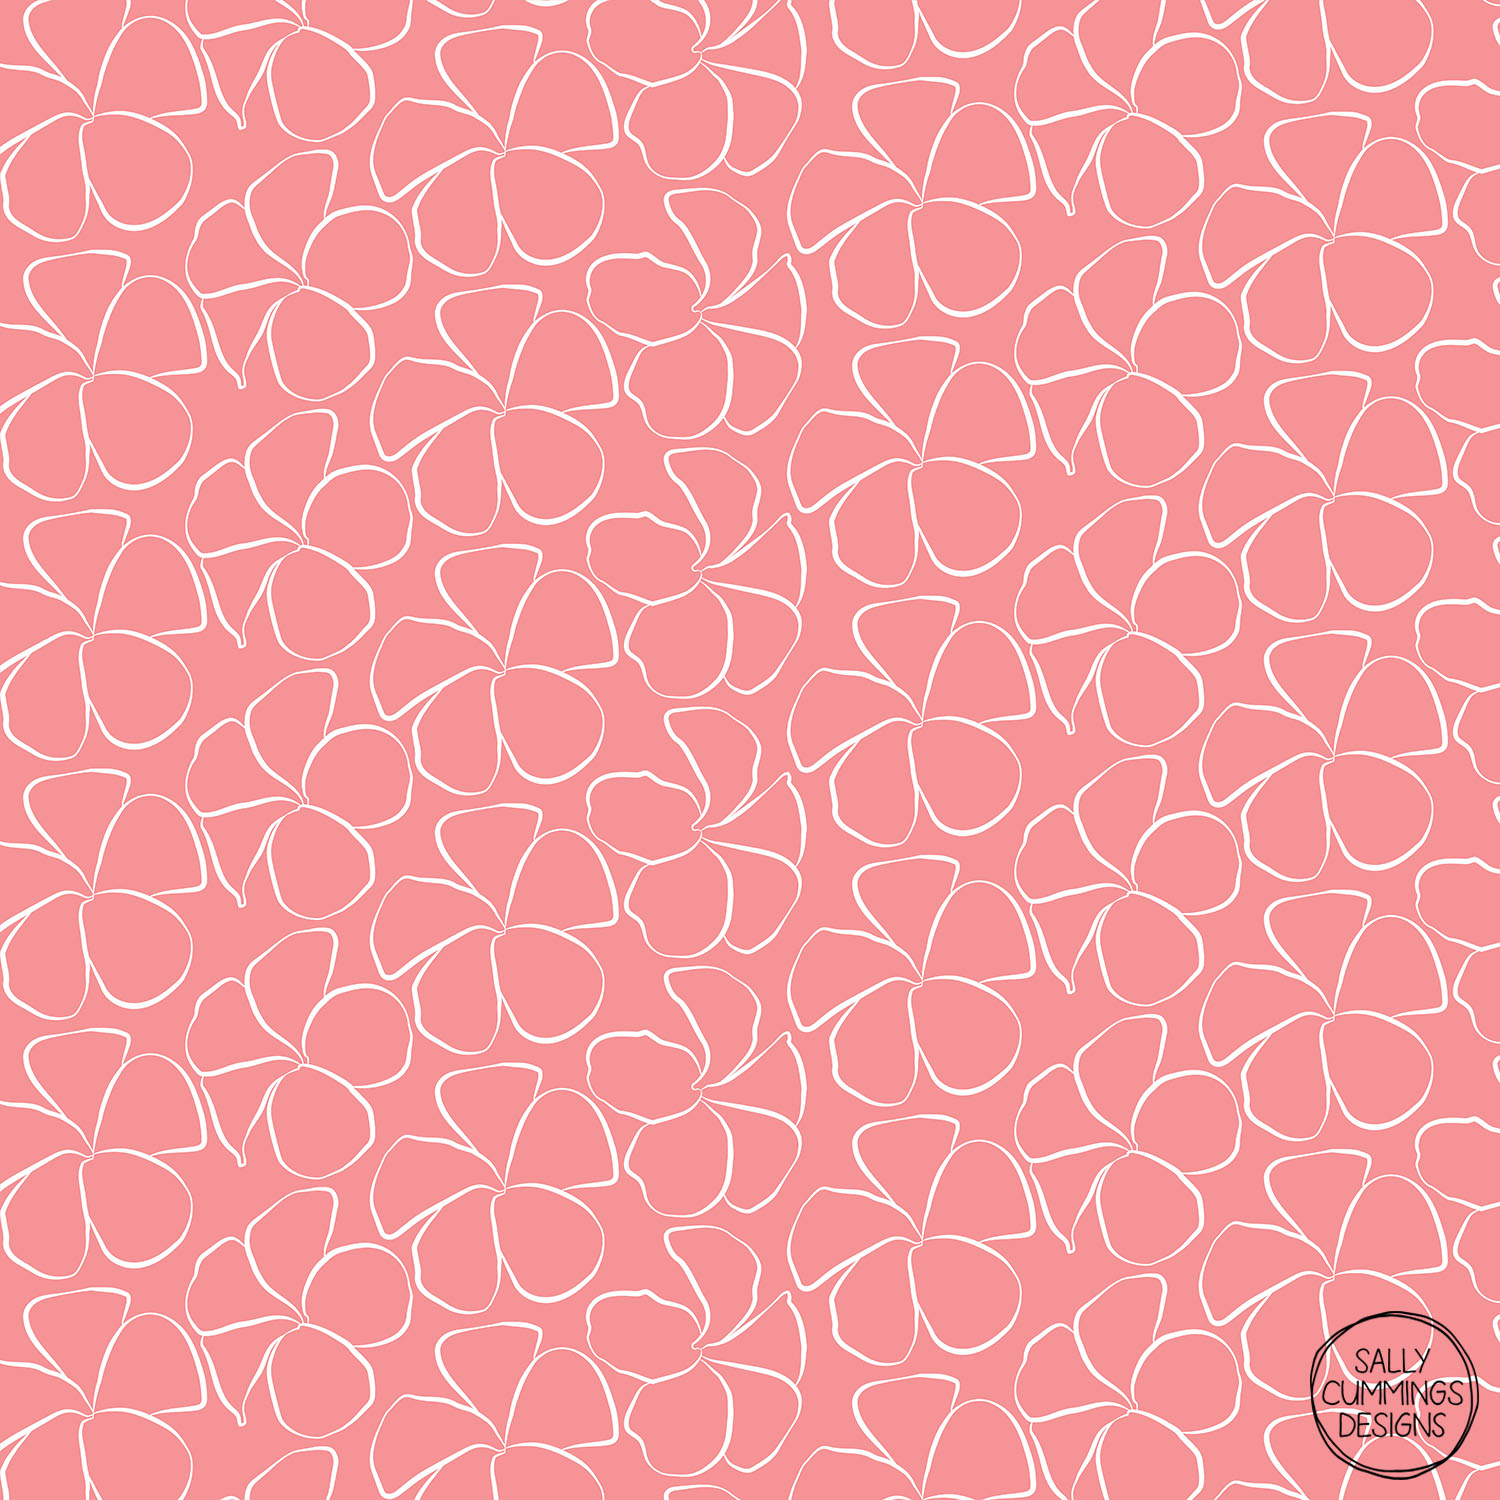 Sally Cummings Designs - Sweet Frangipani (White on Salmon Pink)